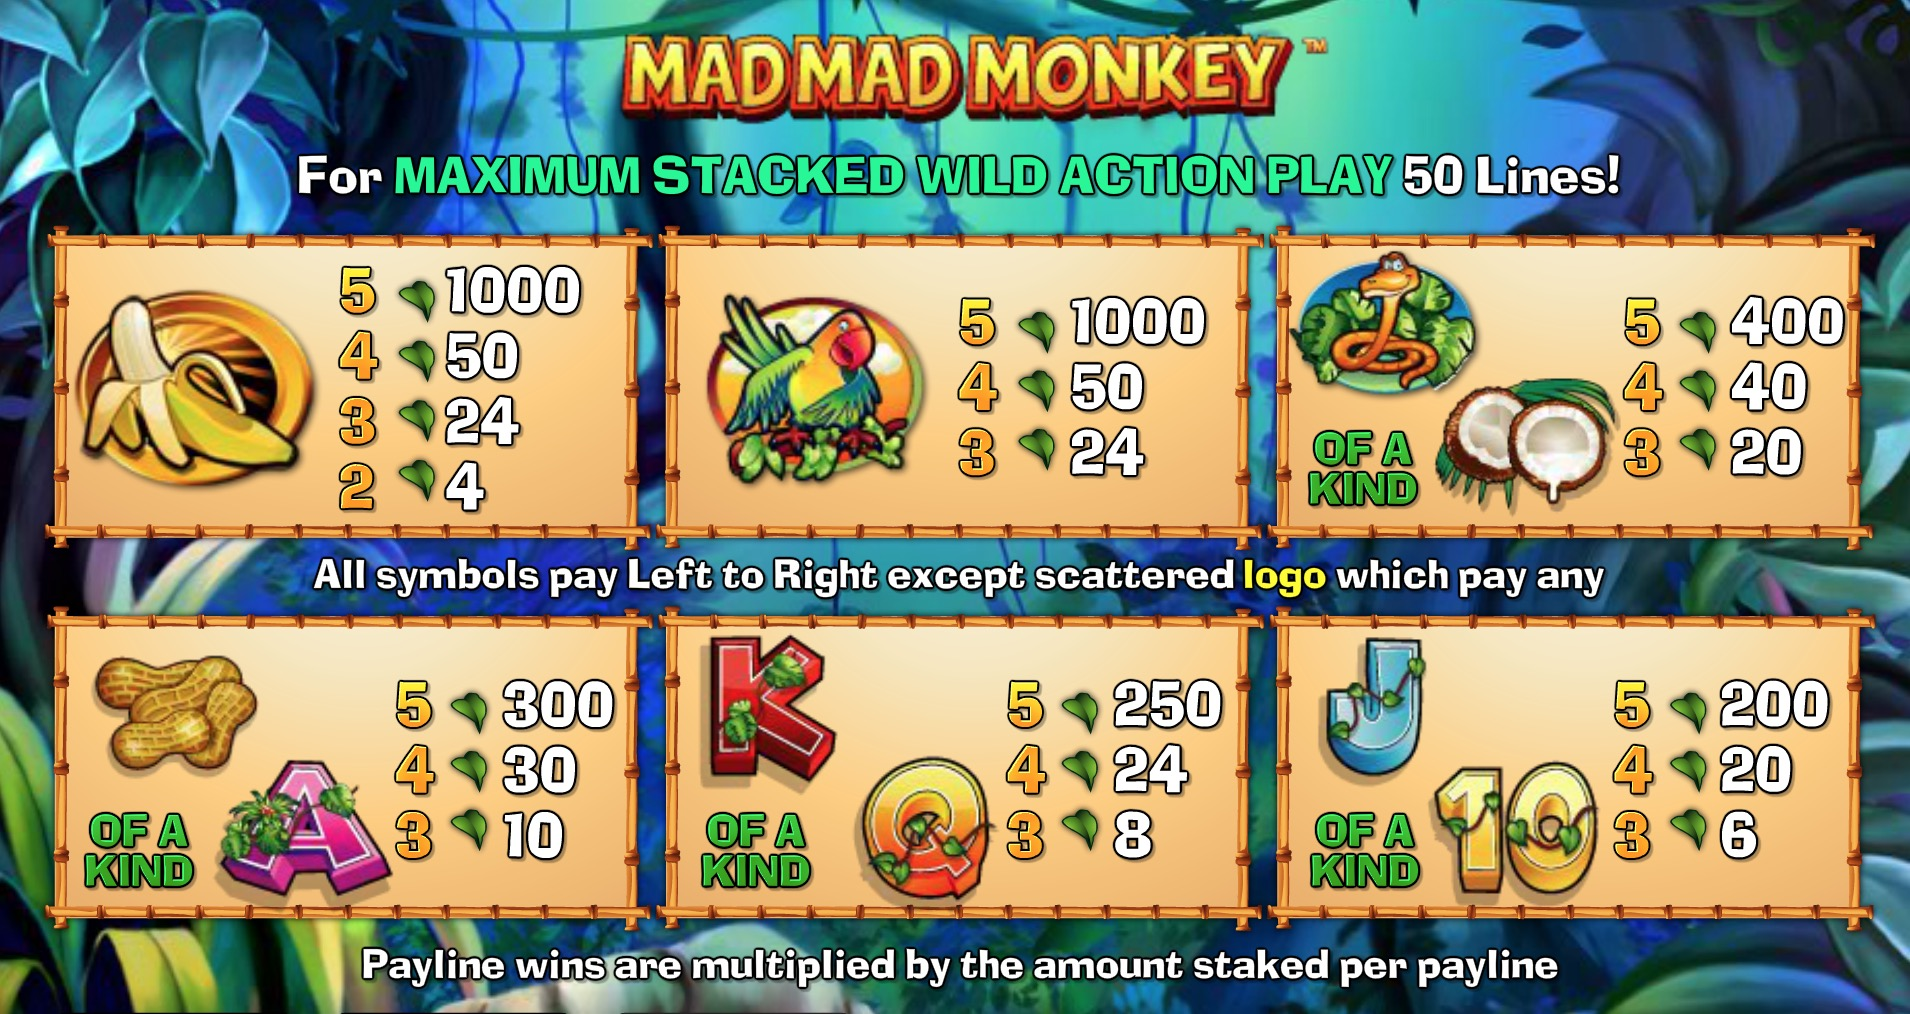 The Mad Mad Monkey Paytable